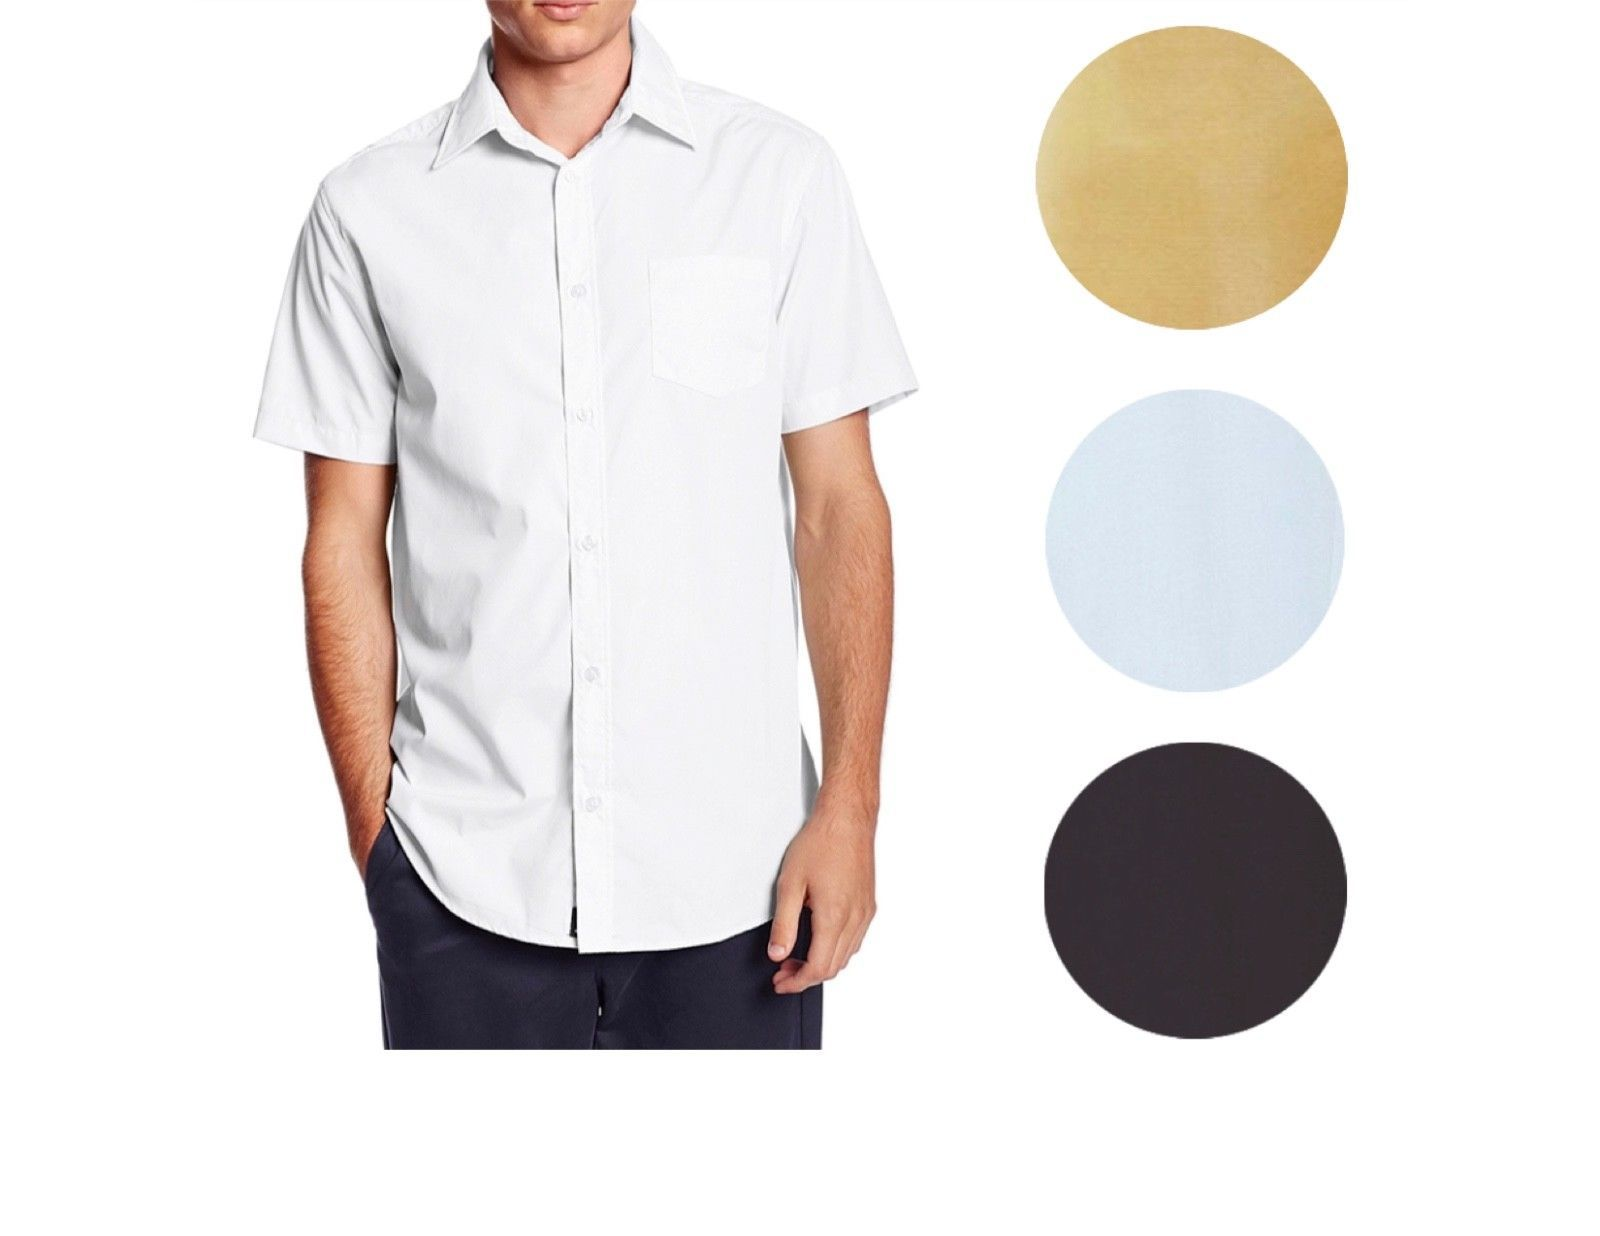 Omega Italy Men's Premium Classic Button Down Short Sleeve Solid Dress Shirt